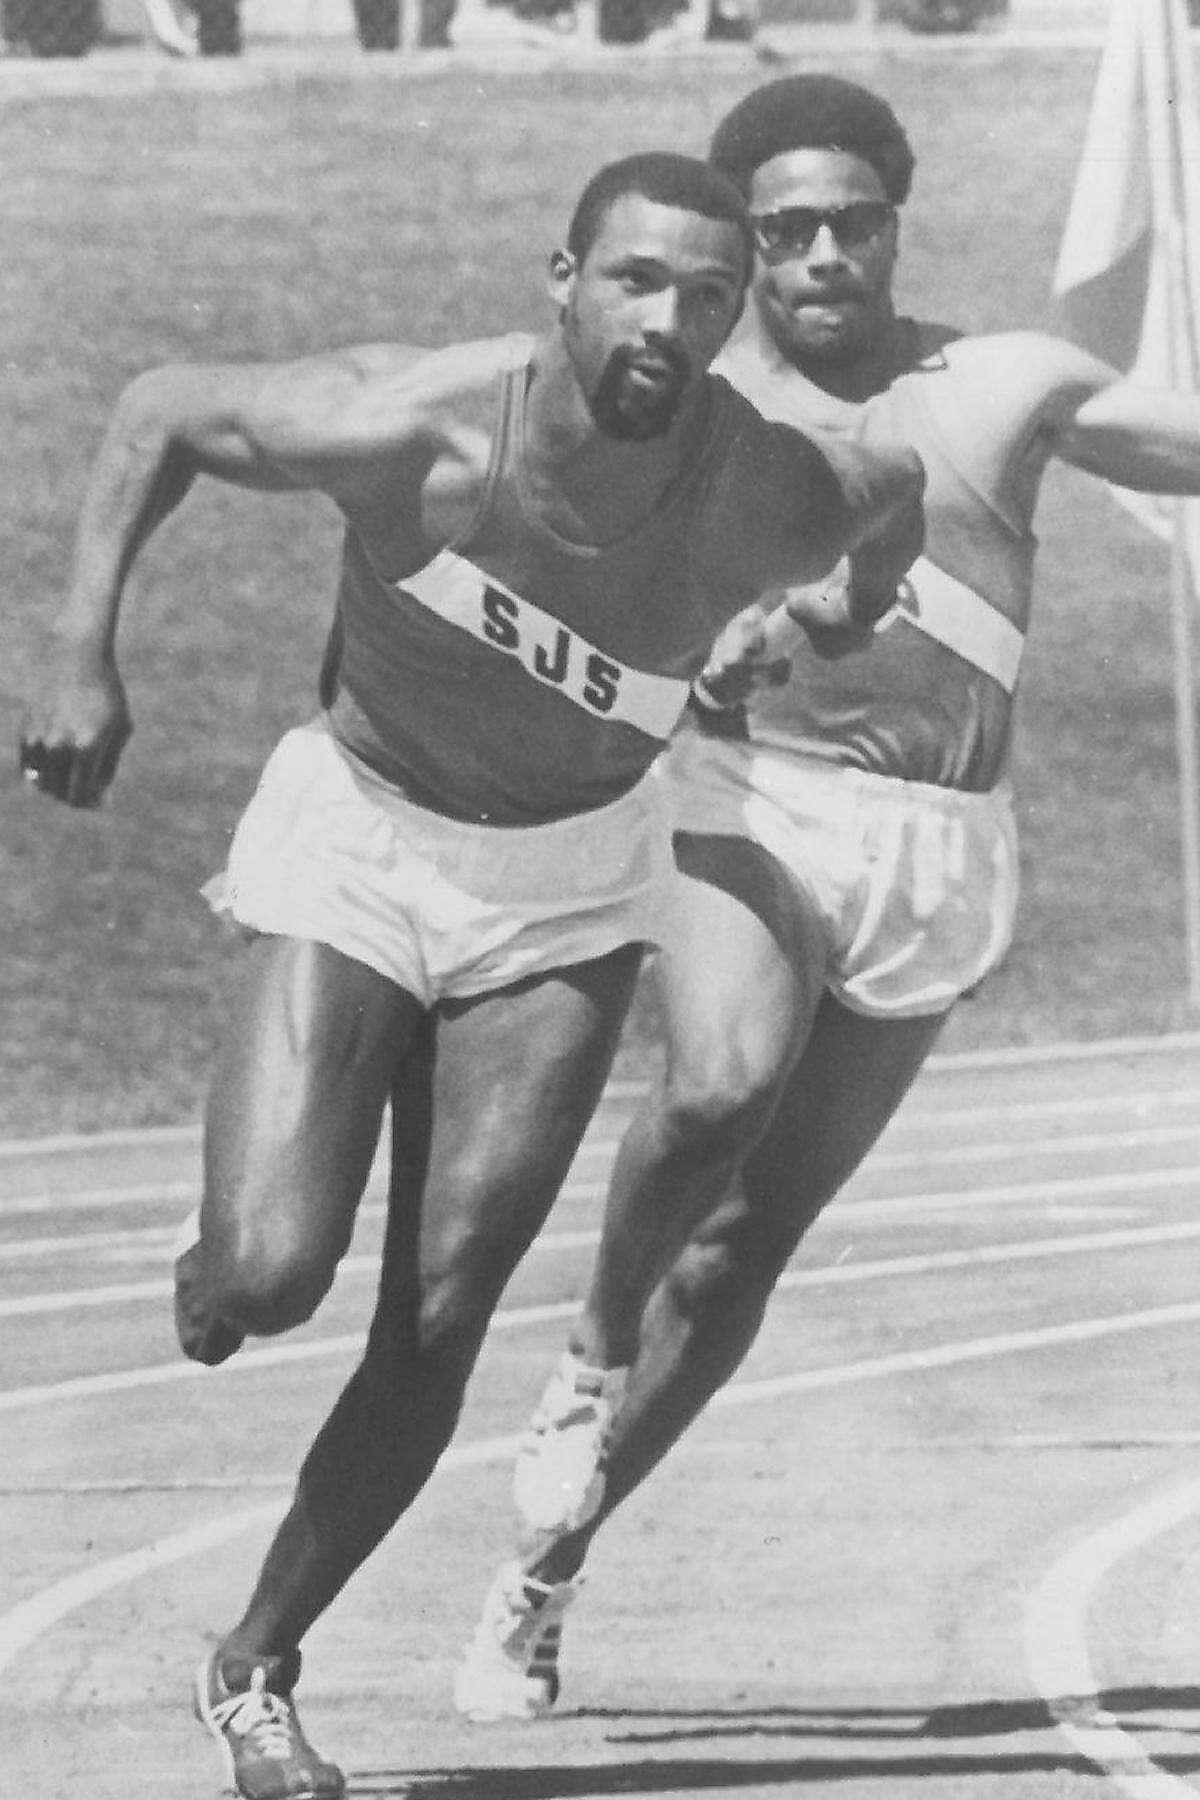 San Jose State's Ronnie Ray Smith passes the baton to John Carlos in a Bay Area meet in the late 1960s or early 1970s.